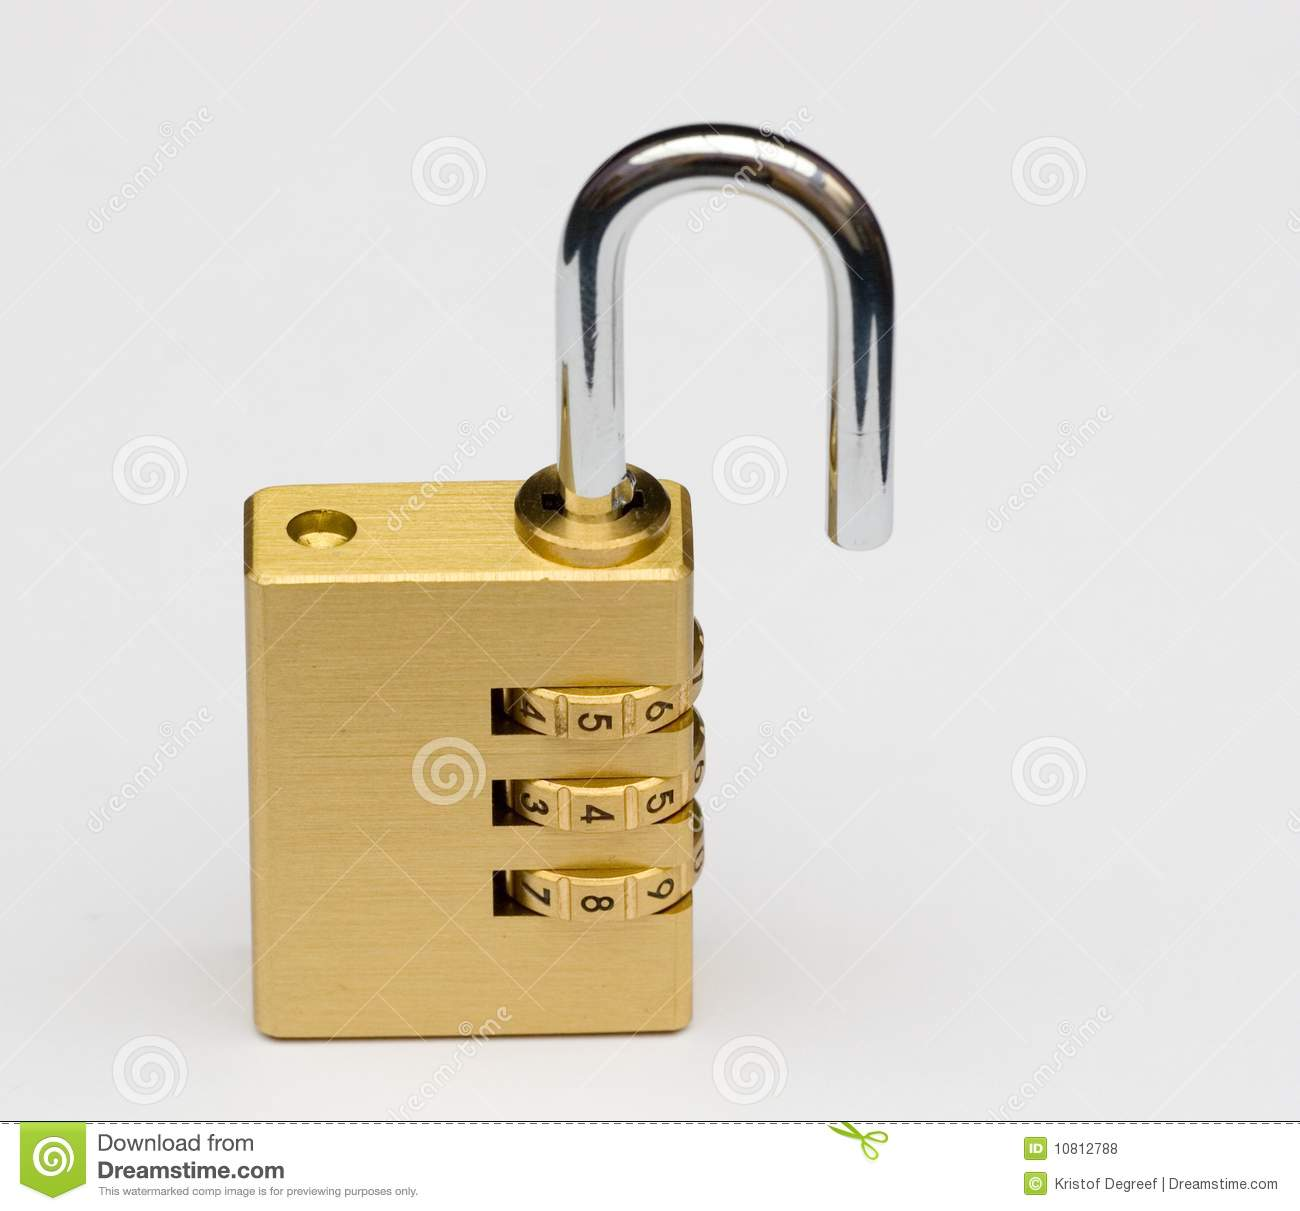 Unlock combination lock